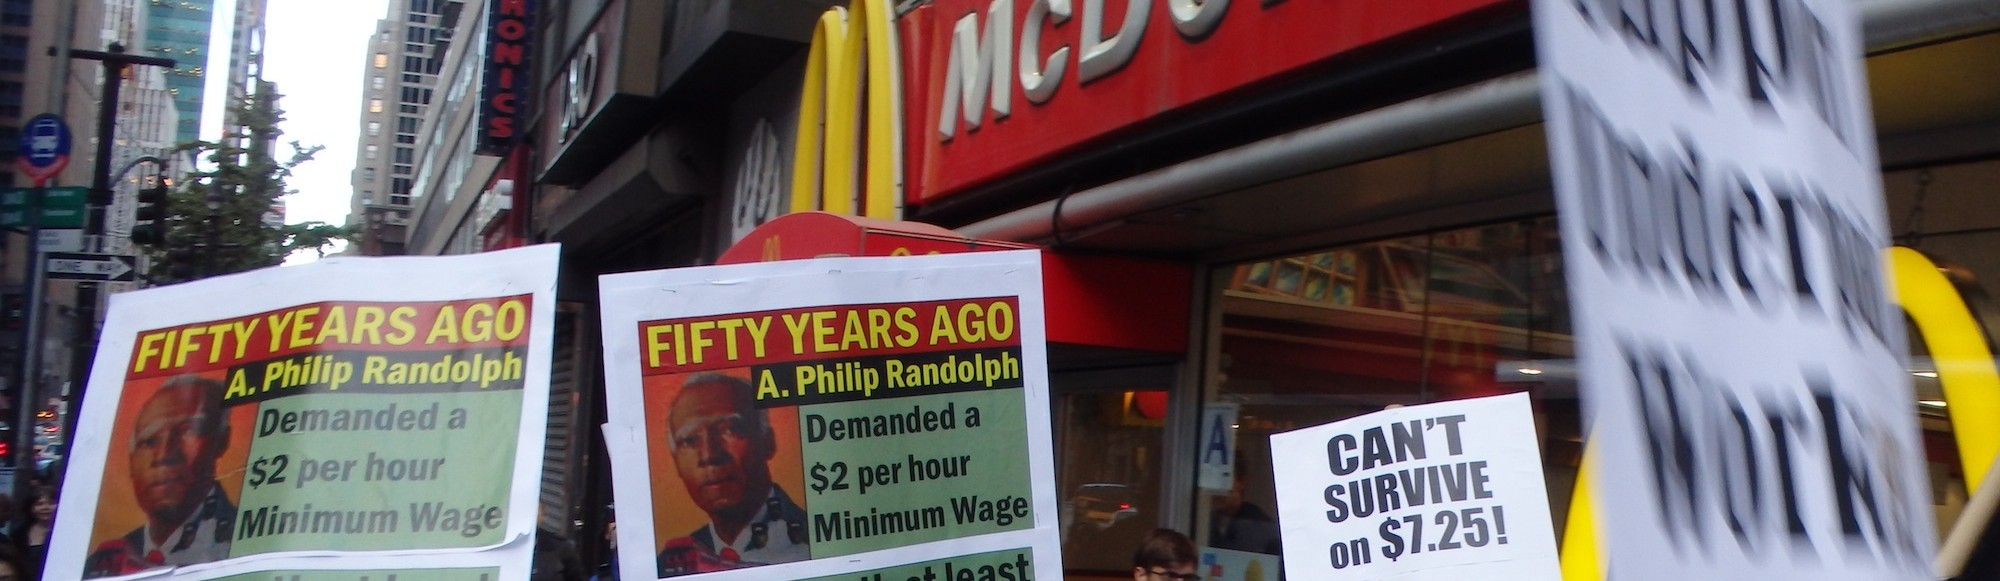 effects of fast food restaurants essay Fast food essay examples  the contributions of fast food restaurant to the obesity and declining health of americans  the reality of fast food and its effects.